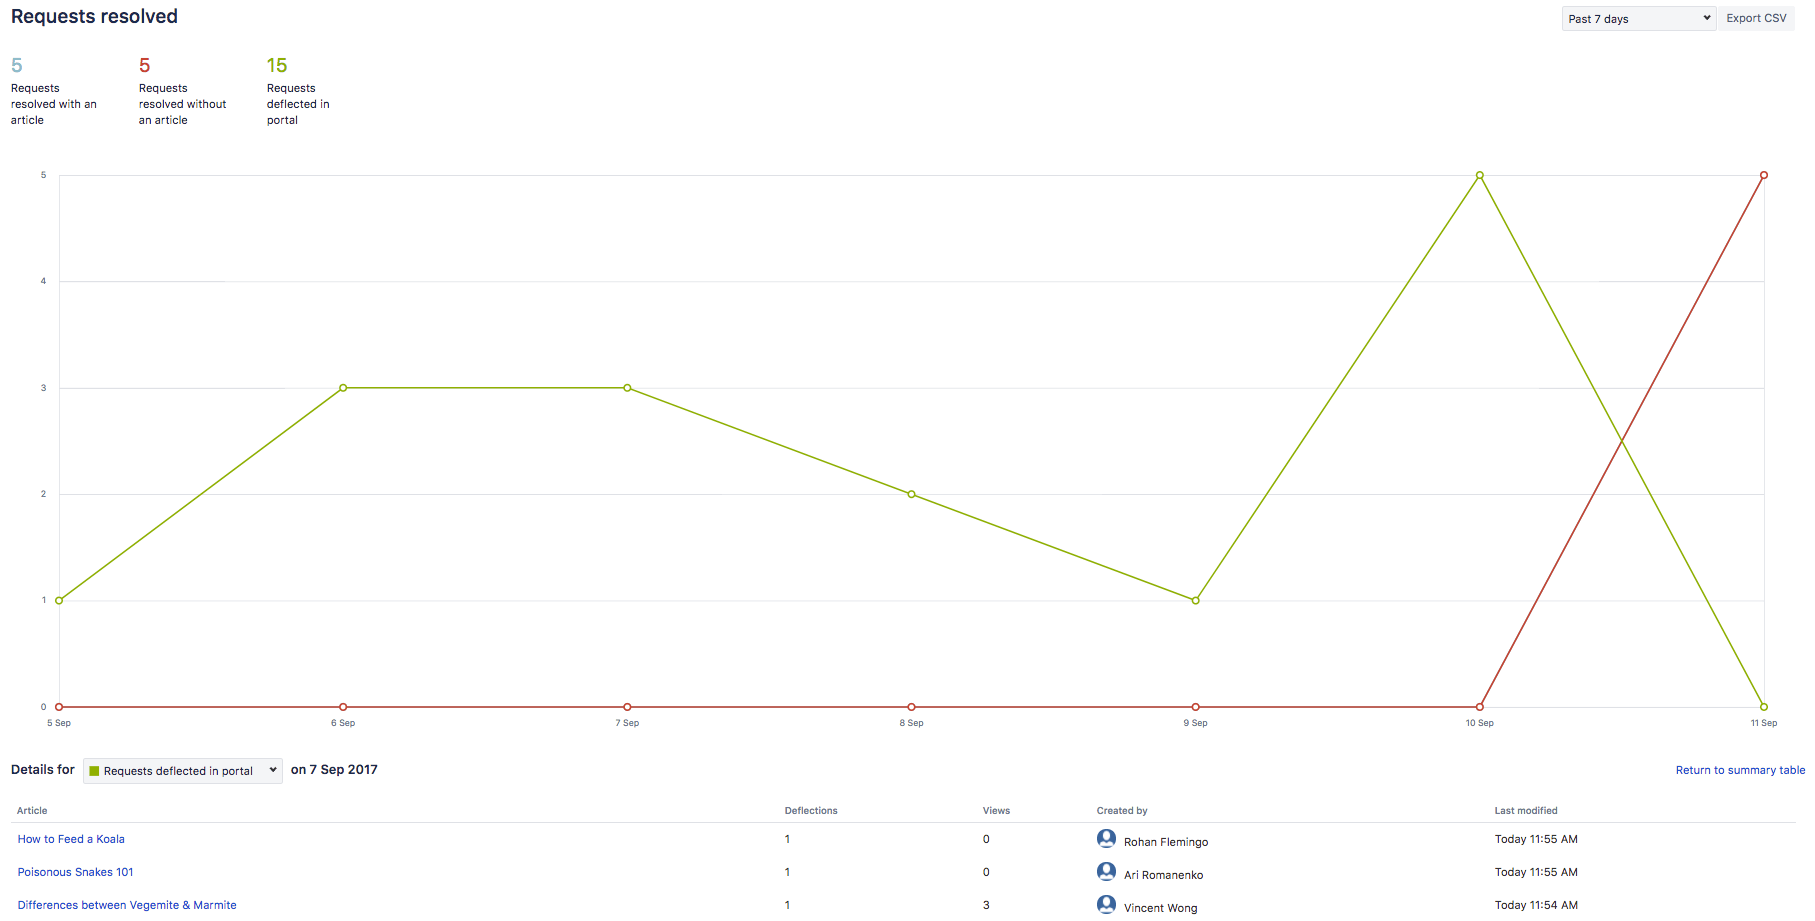 Requests resolved graph